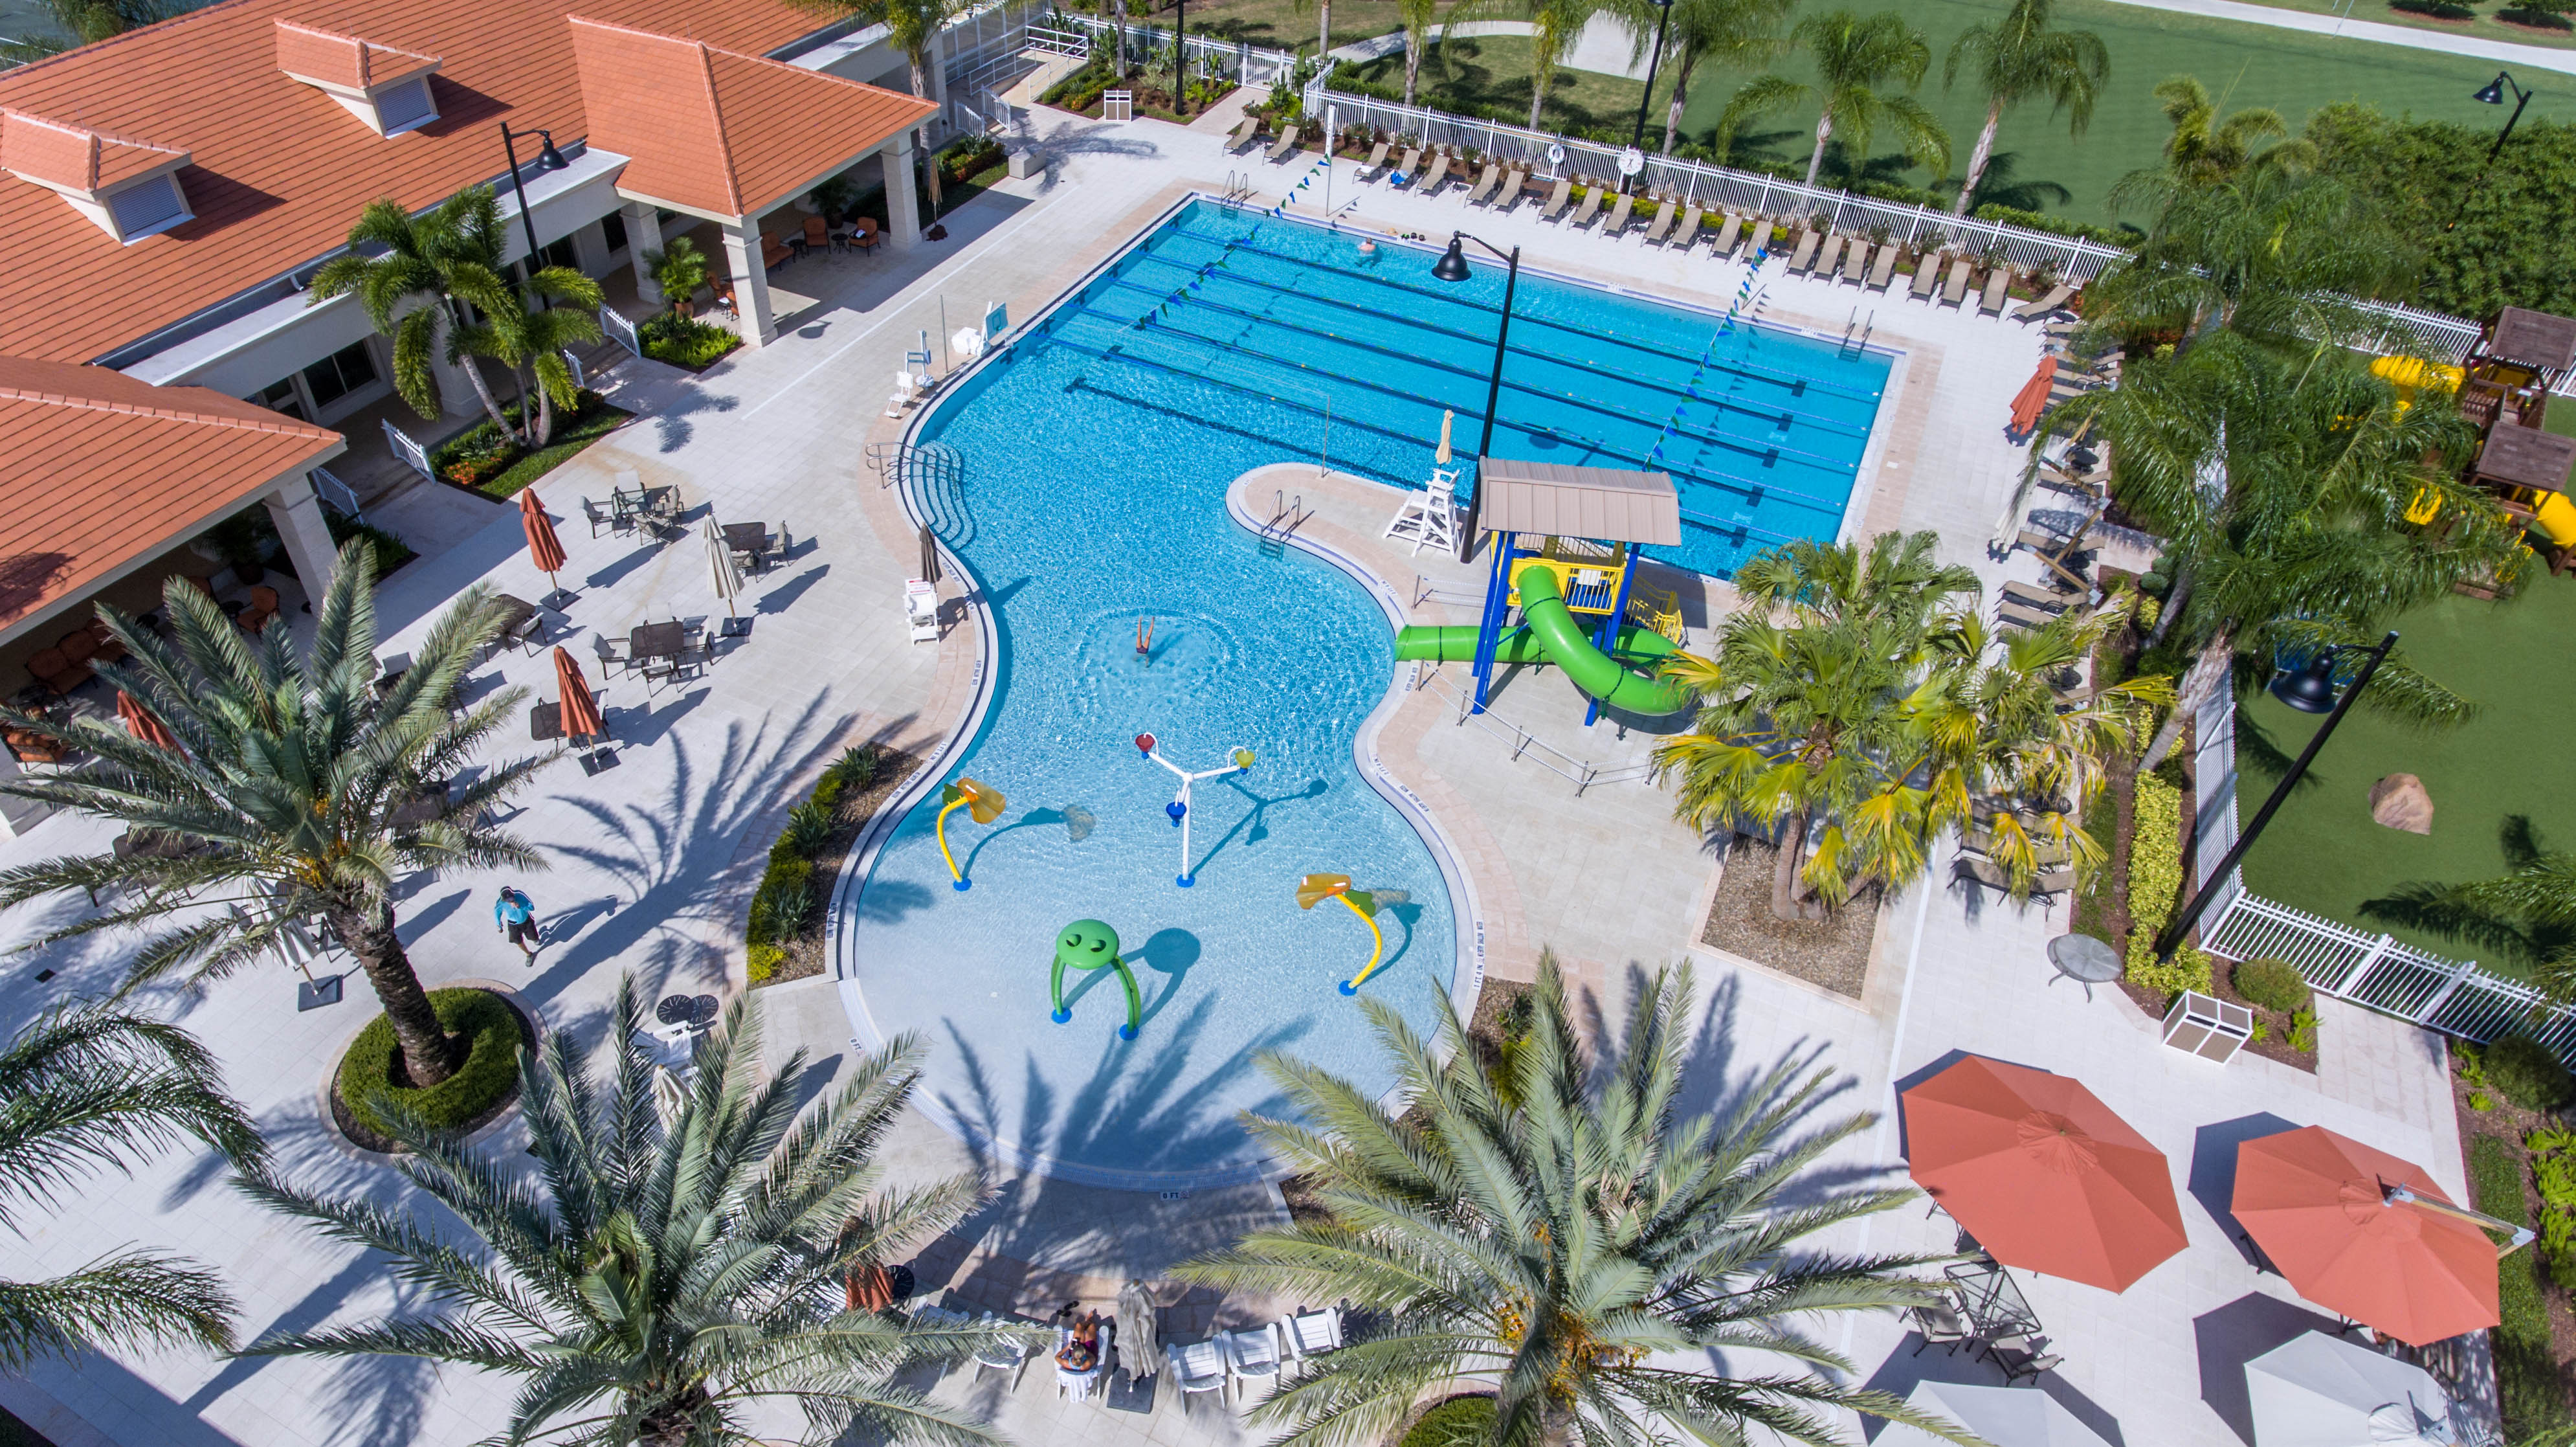 Interlachen Country Club Winter Park Florida Commercial Pool Construction Commercial Pool